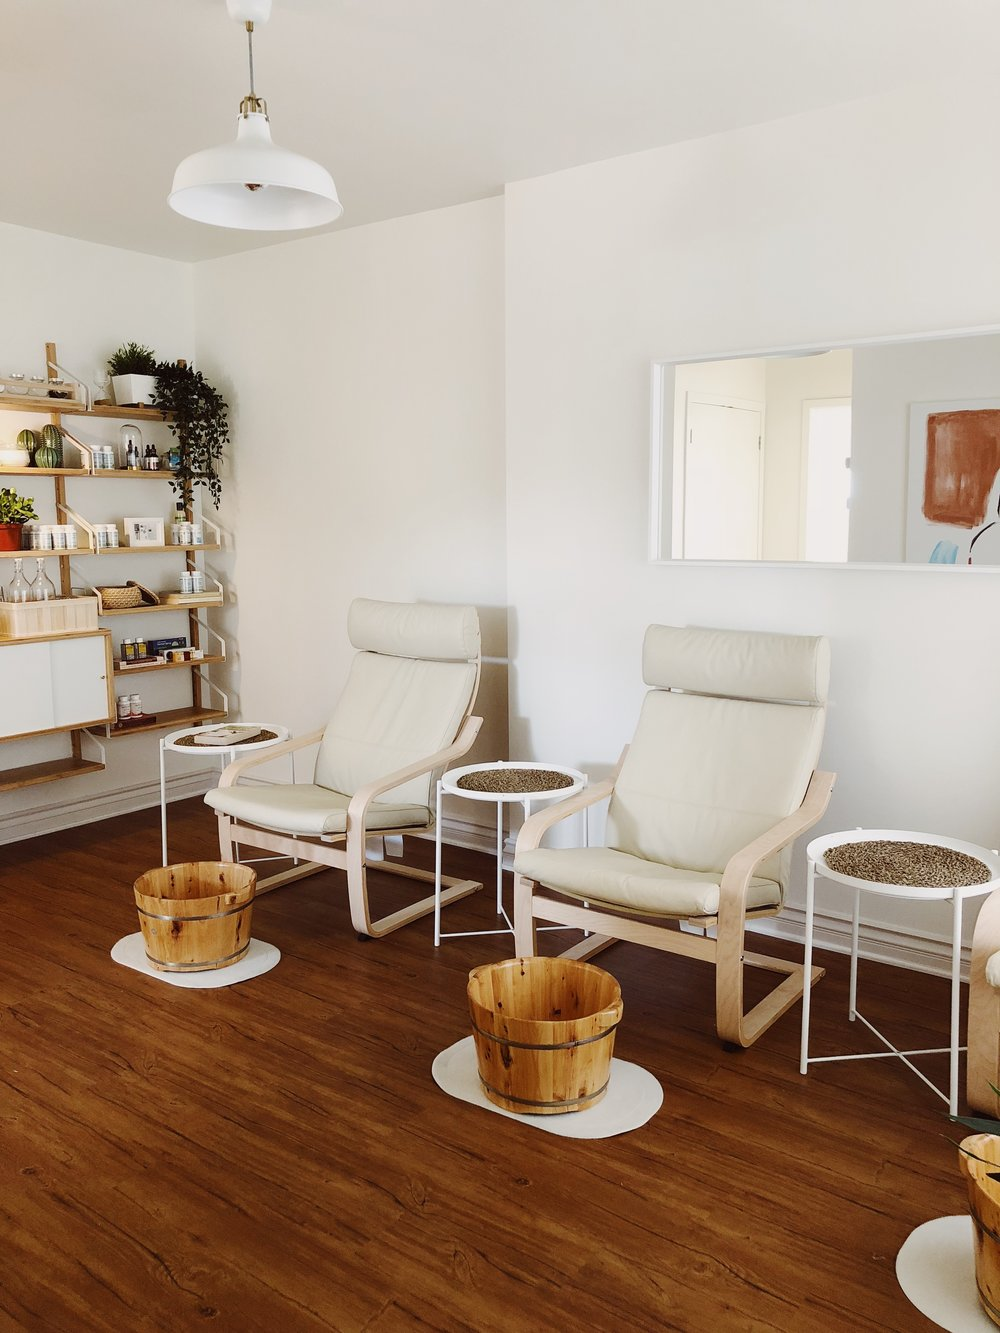 EL SEGUNDO ACUPUNCTURE STUDIO